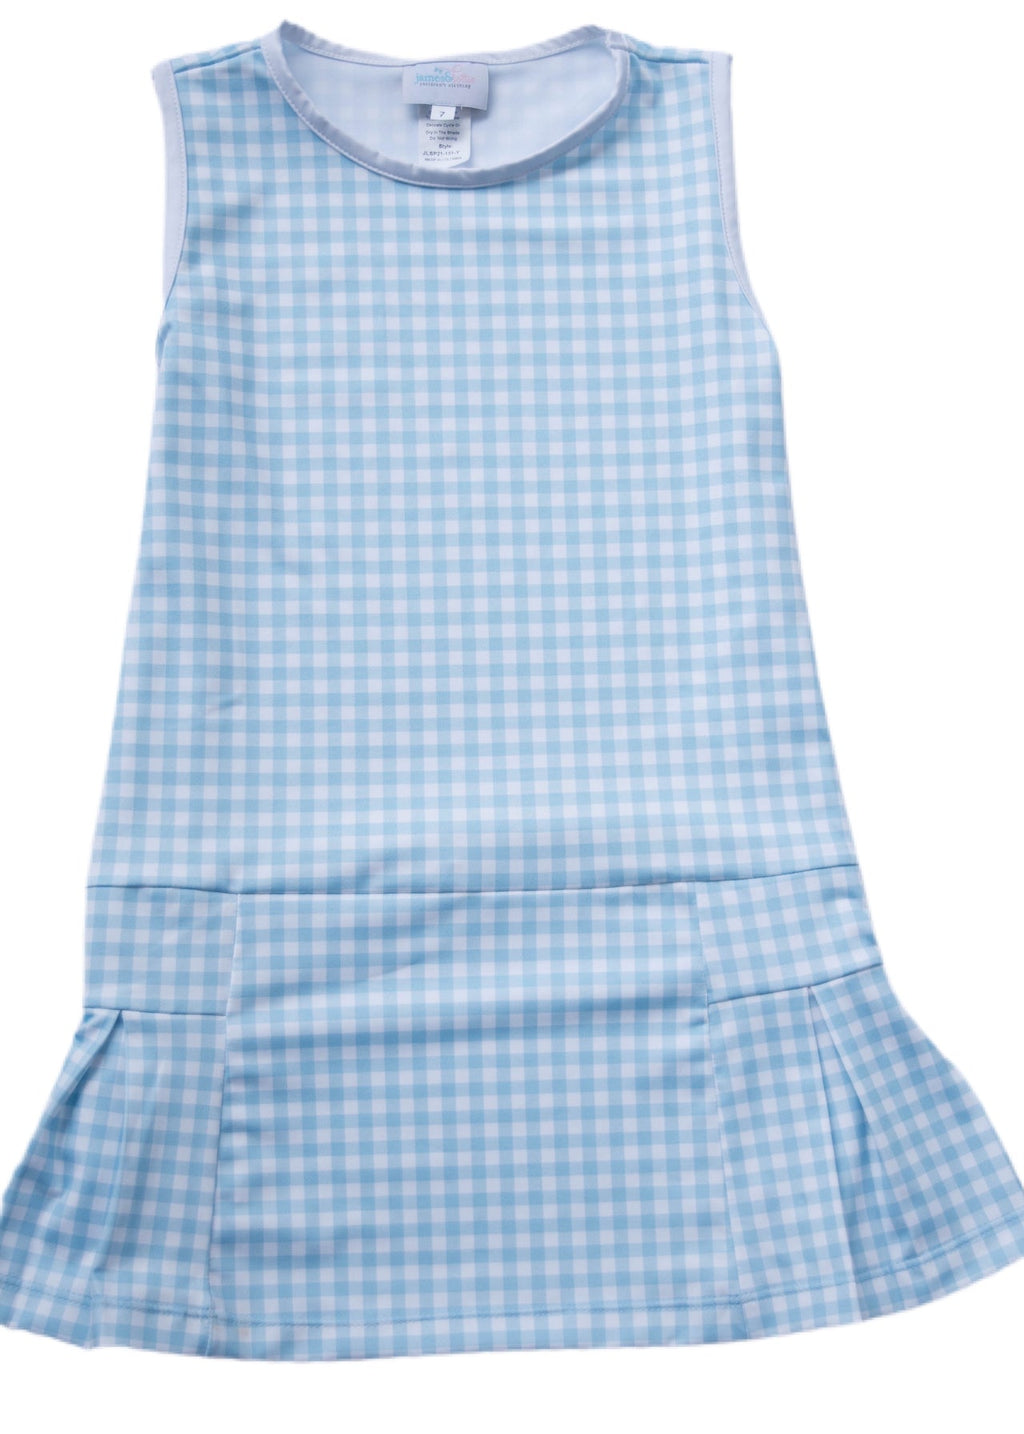 James and Lottie Blair Blue Gingham Tennis Dress